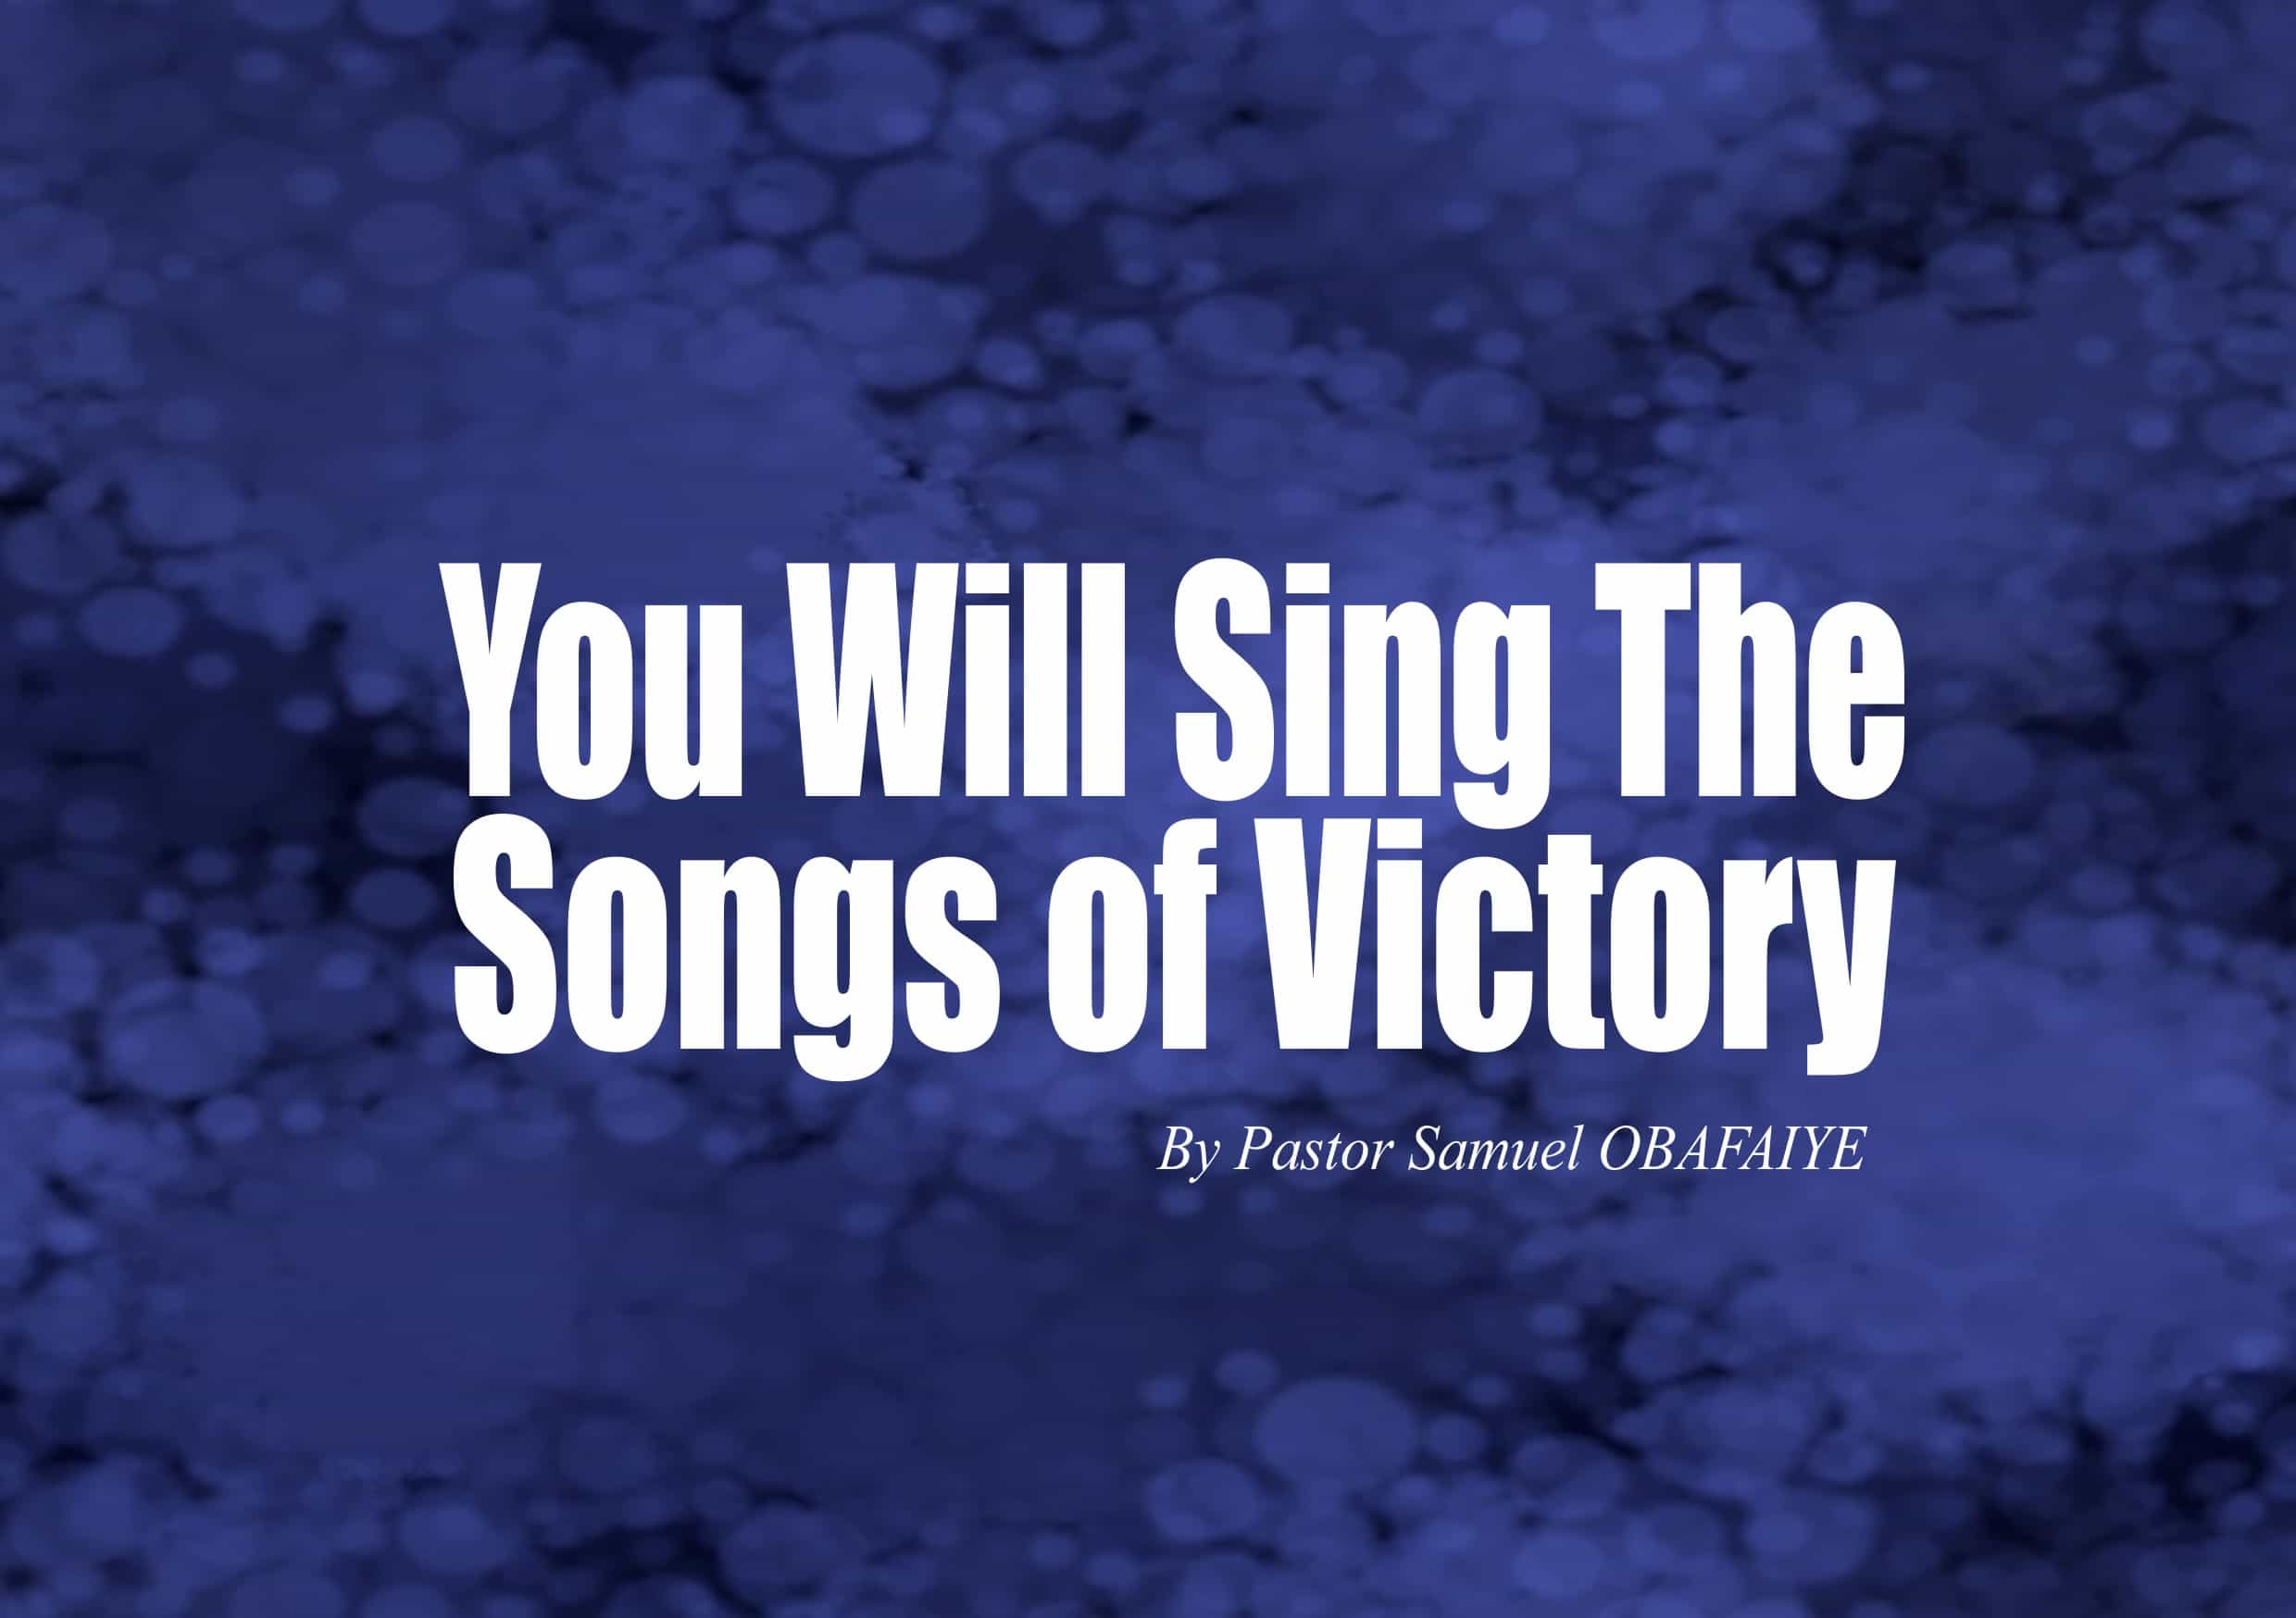 You Will Sing Songs of Victory, by Pastor Samuel Obafaiye